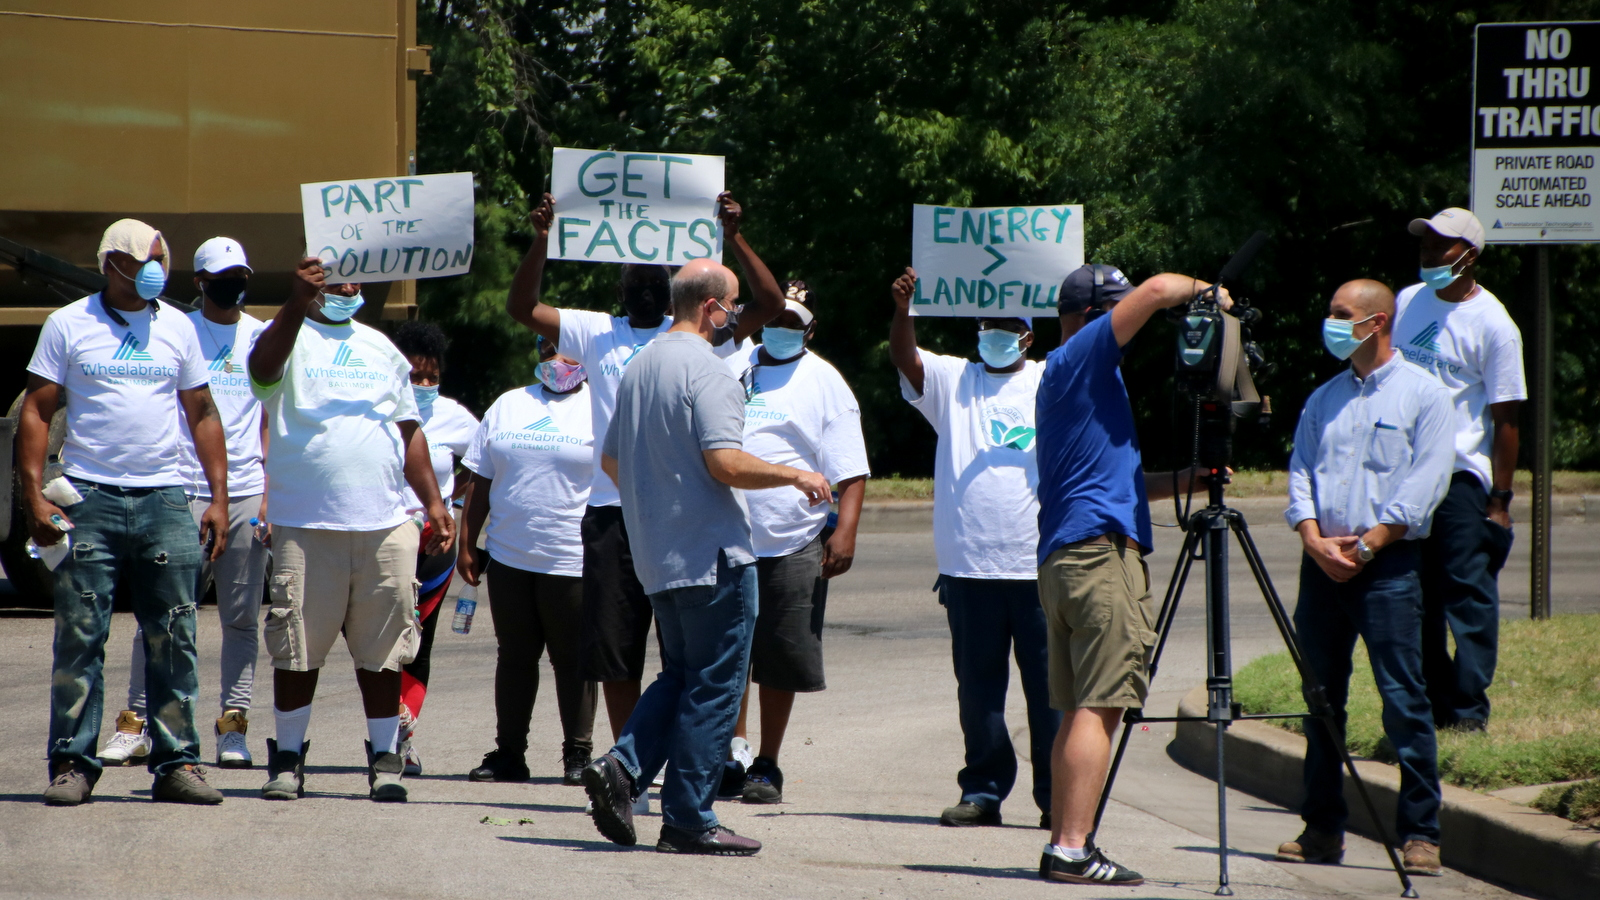 A group wearing Wheelabrator shirts stages a counter-protest. (Louis Krauss)